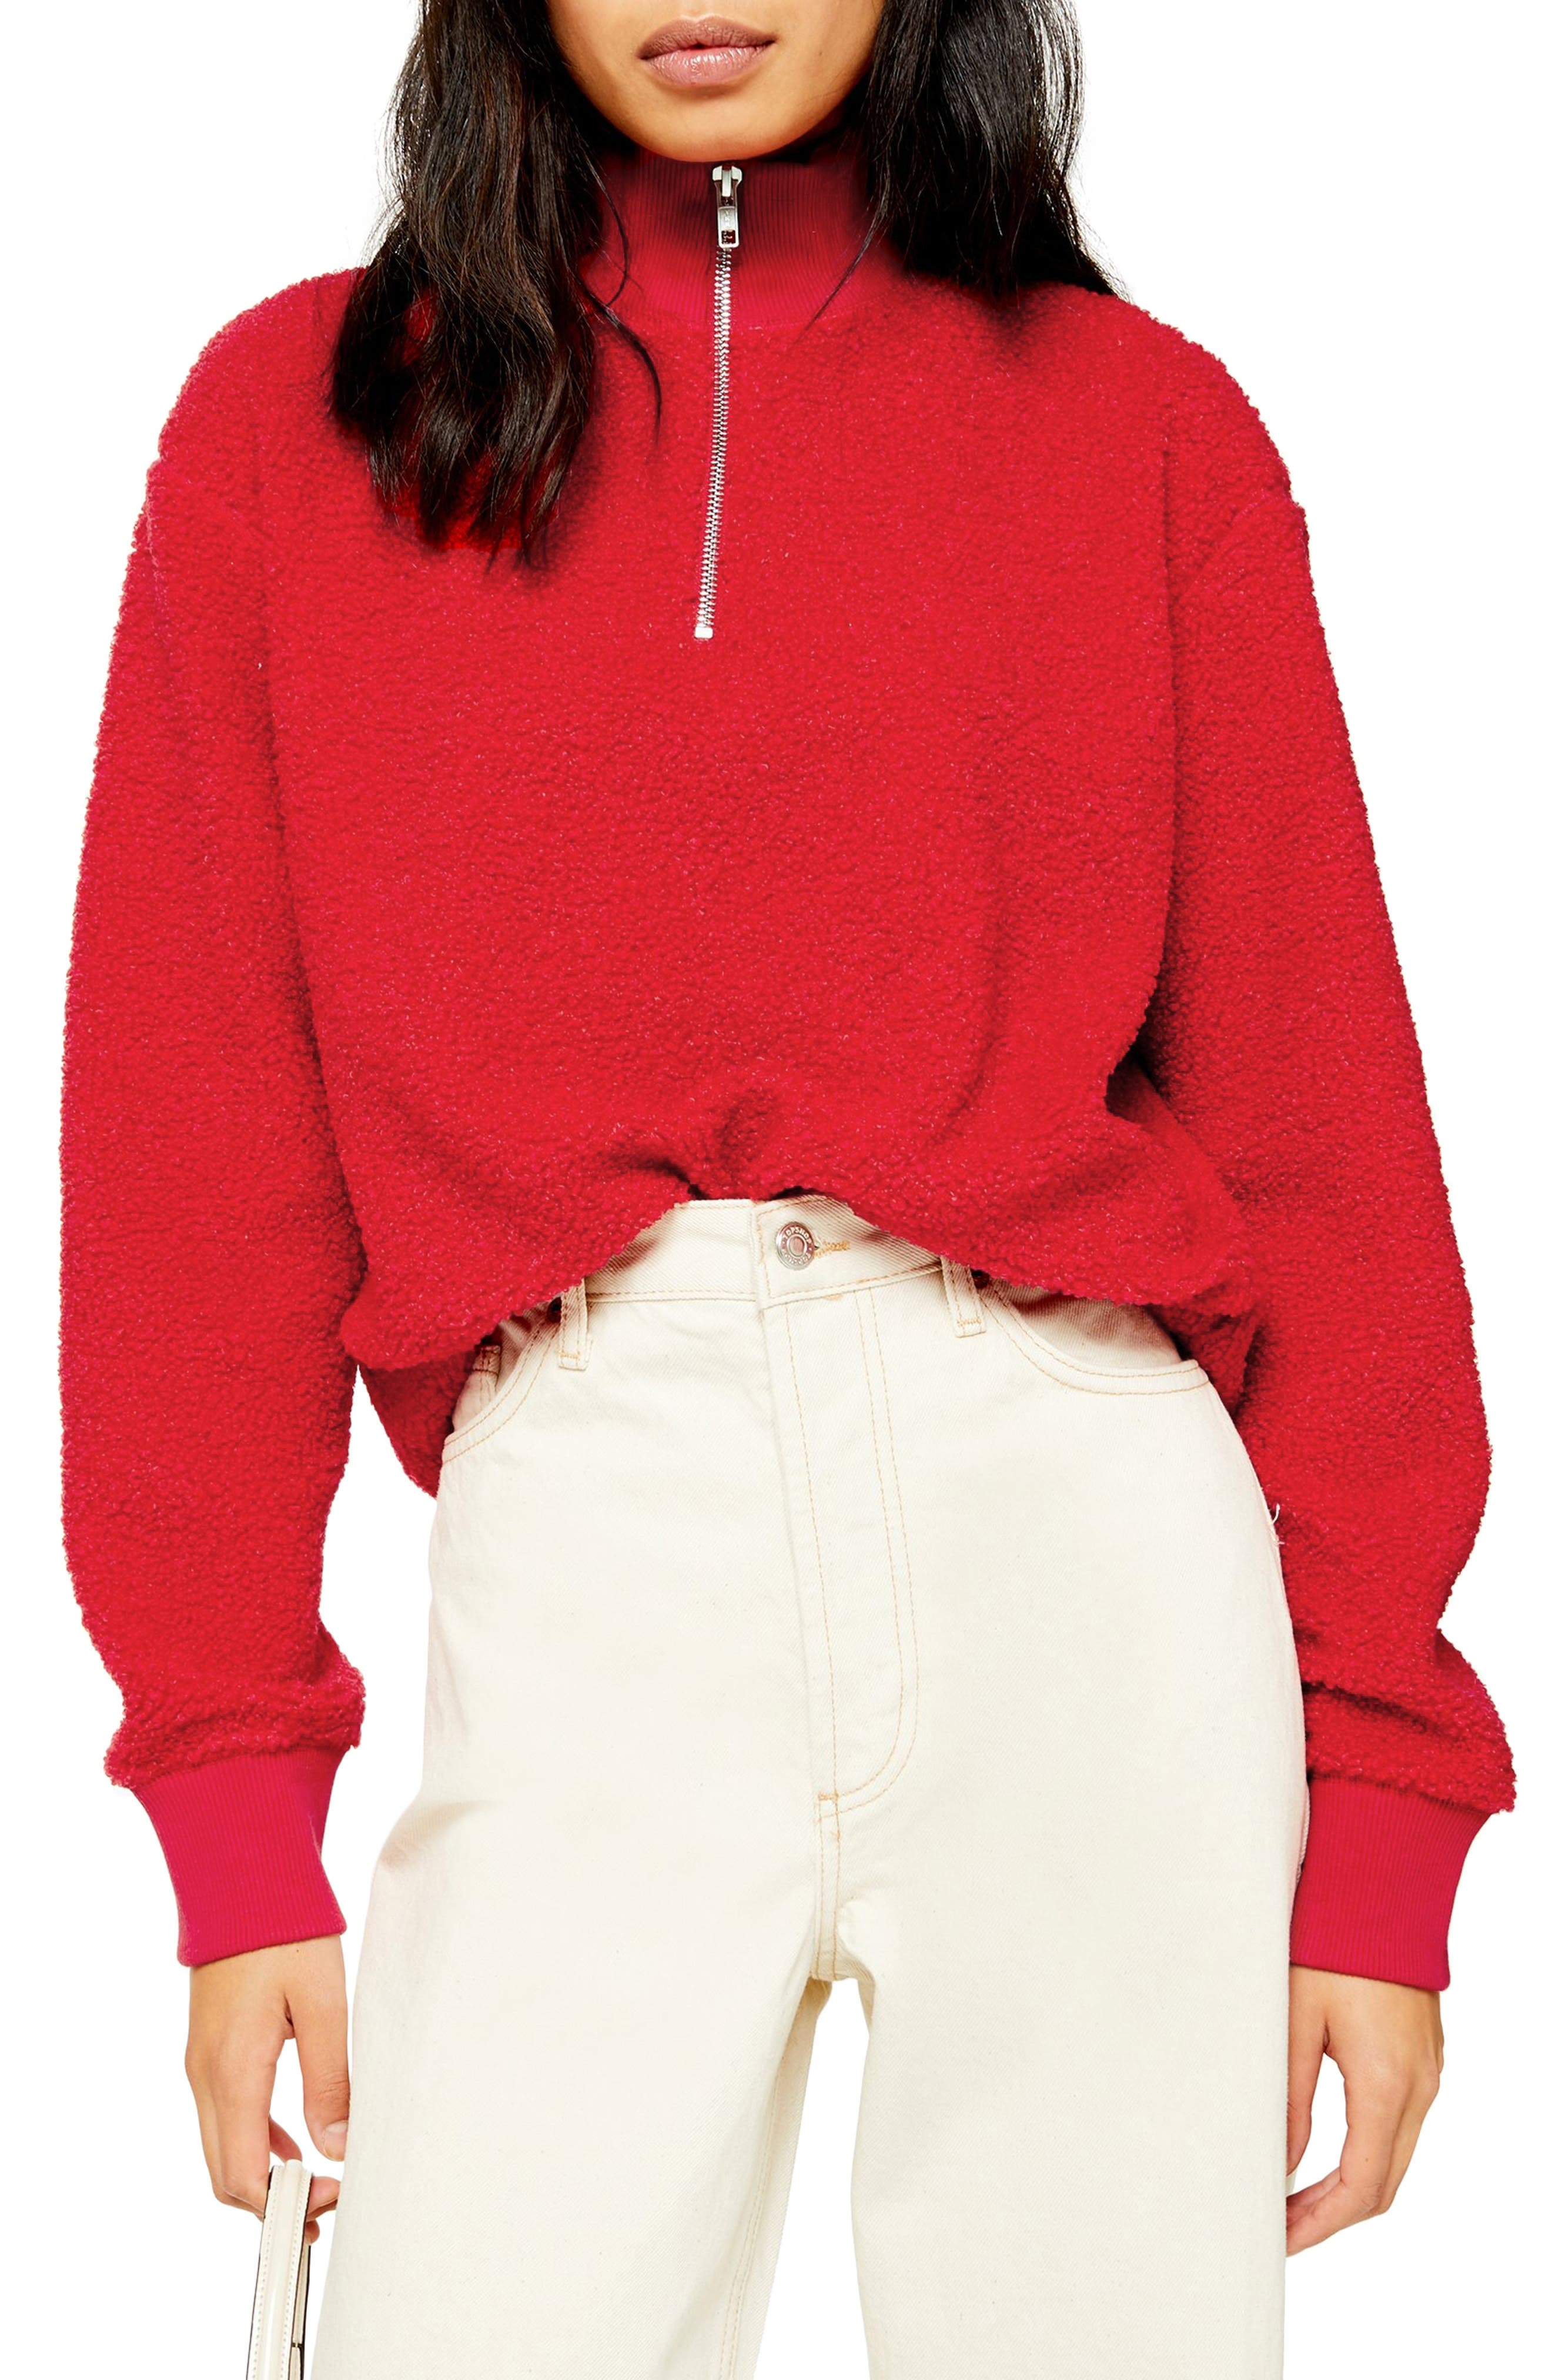 Topshop Half Zip Funnel Neck Sweatshirt